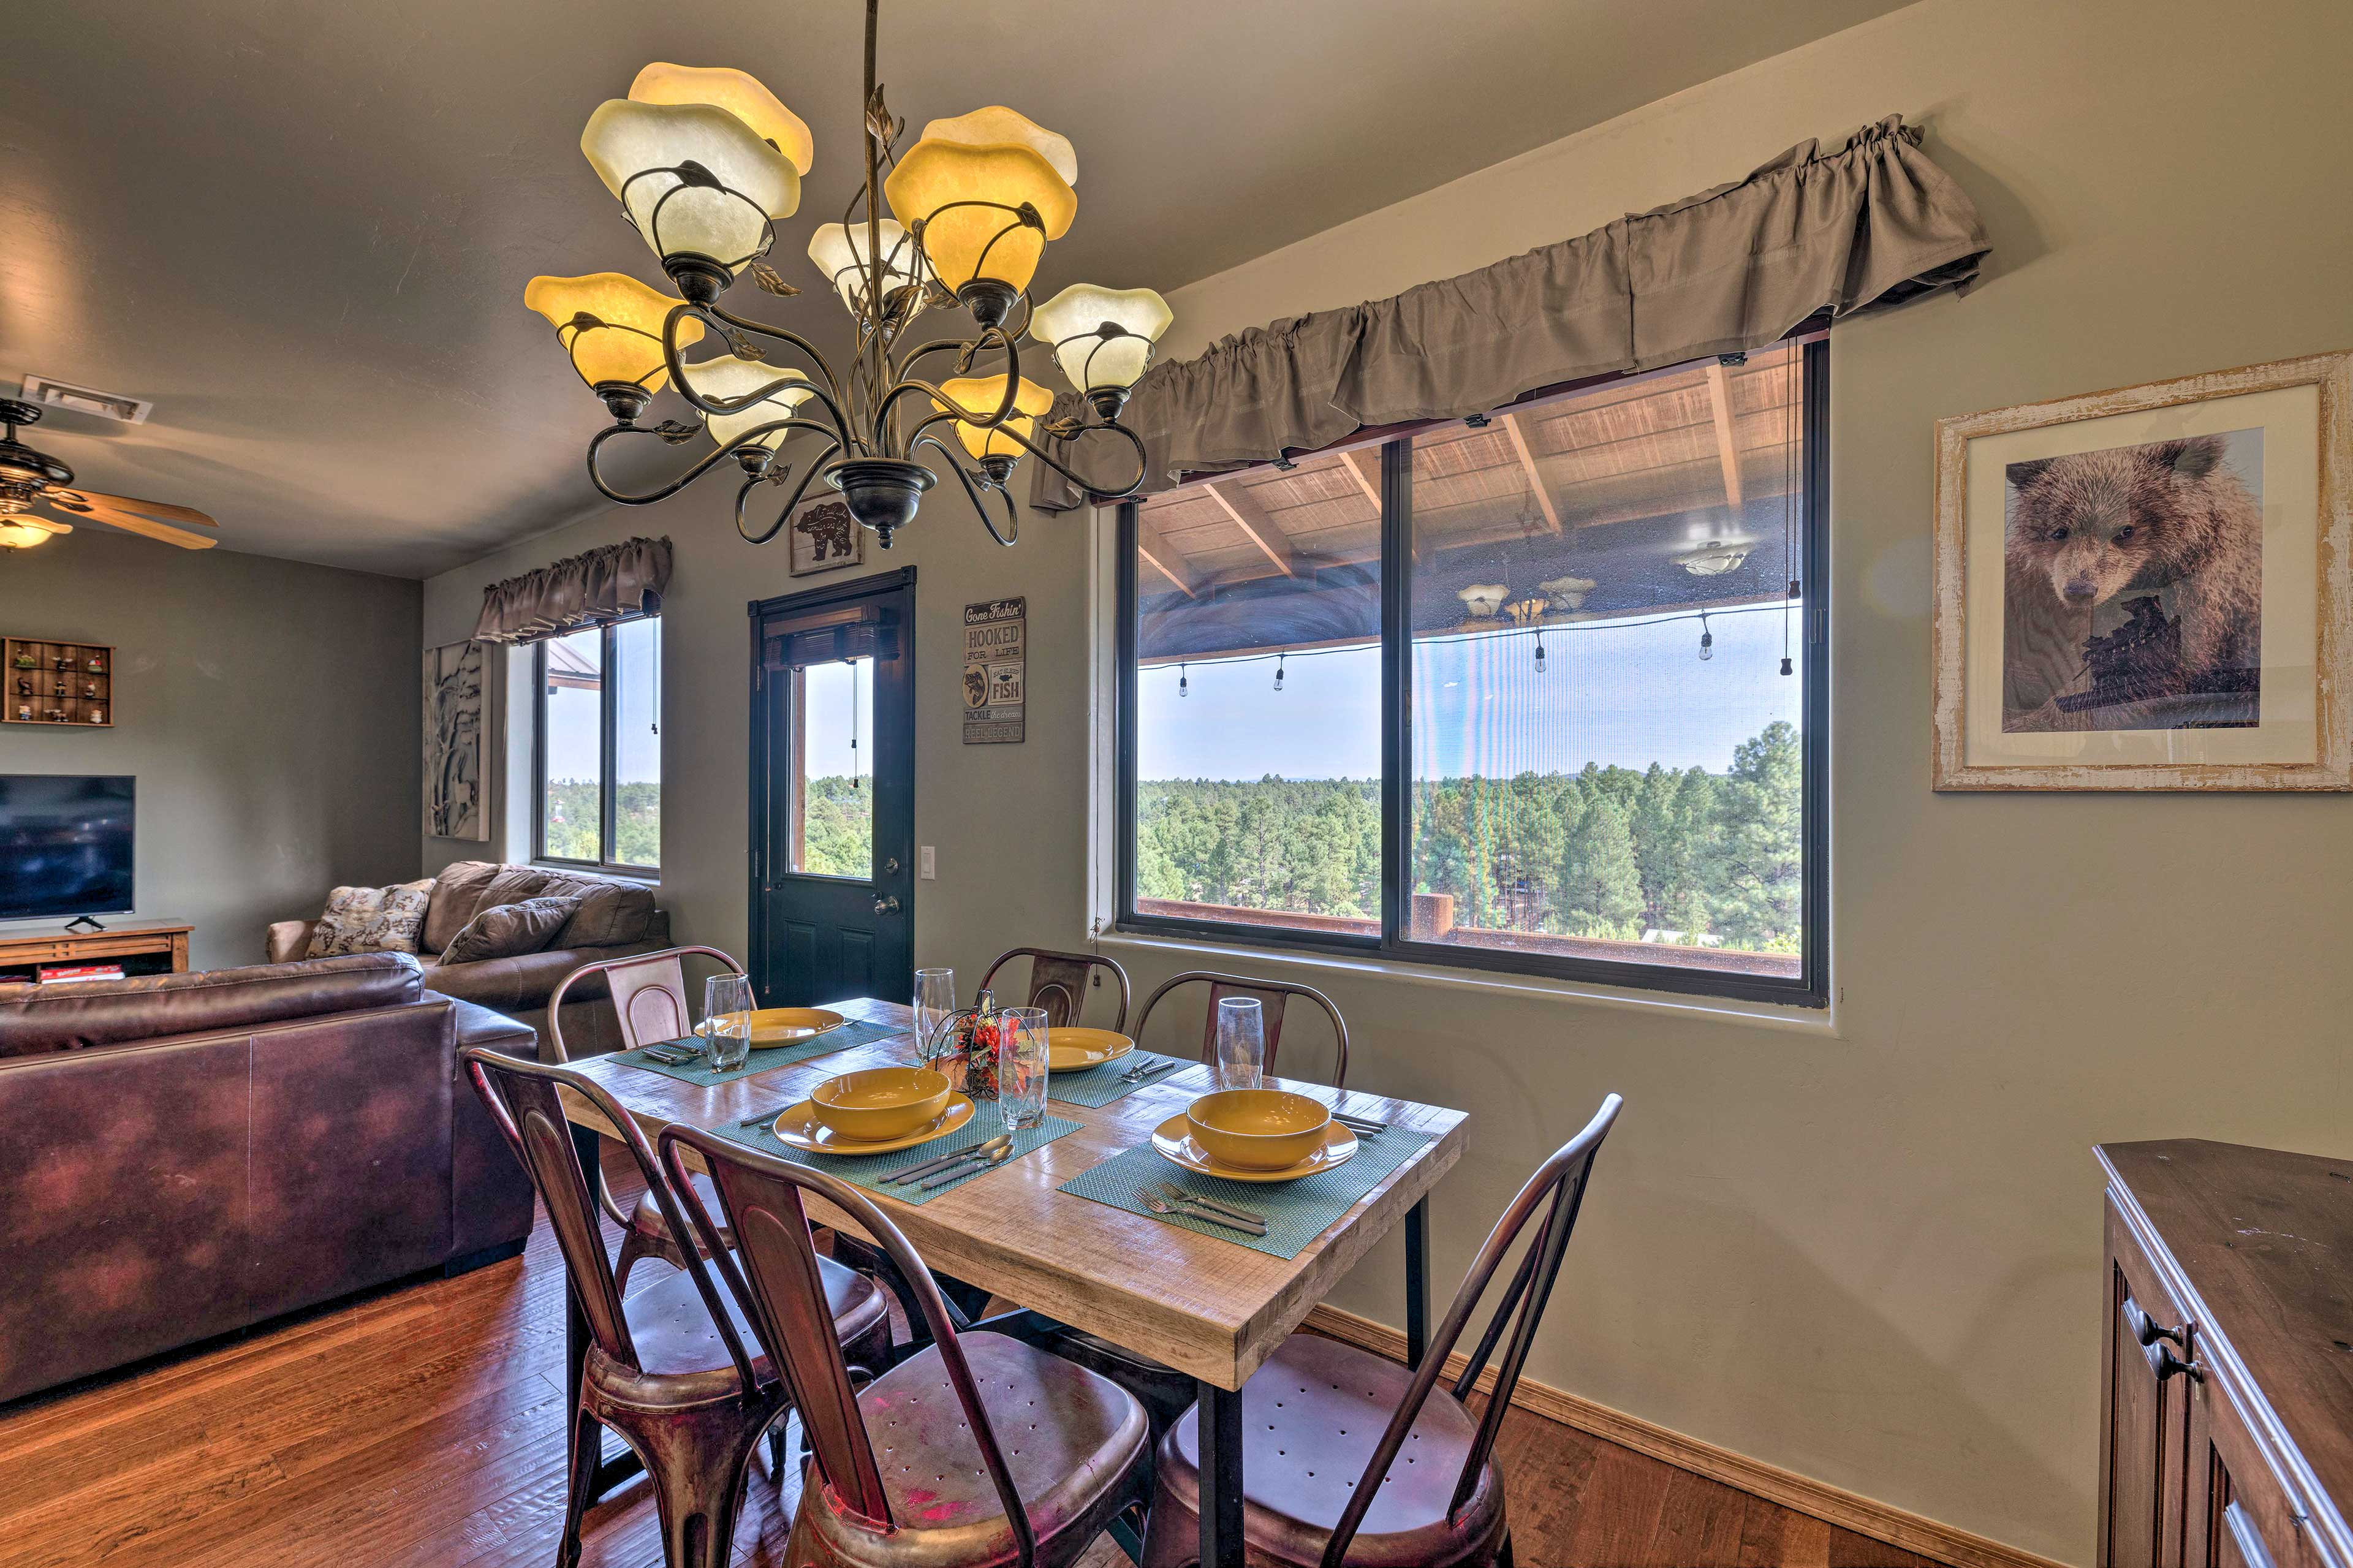 Feel like you're picnicking in the forest with views from the dining table!